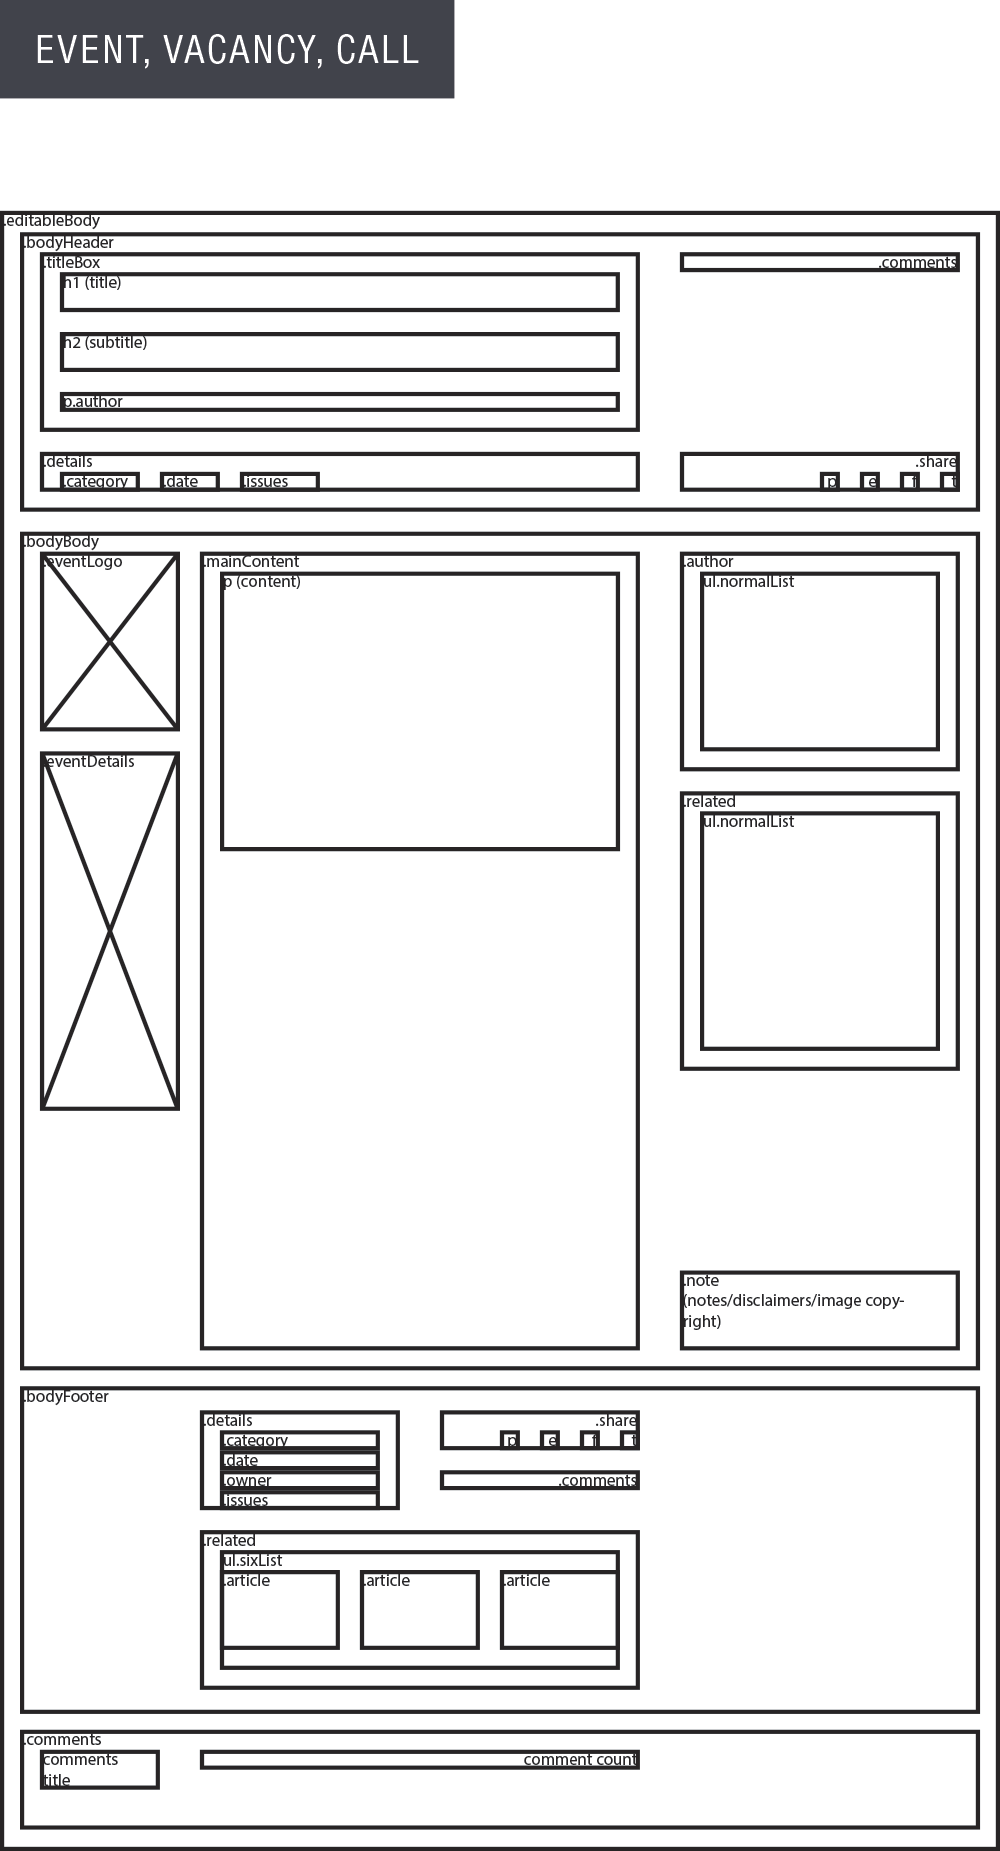 Wireframes of common pages